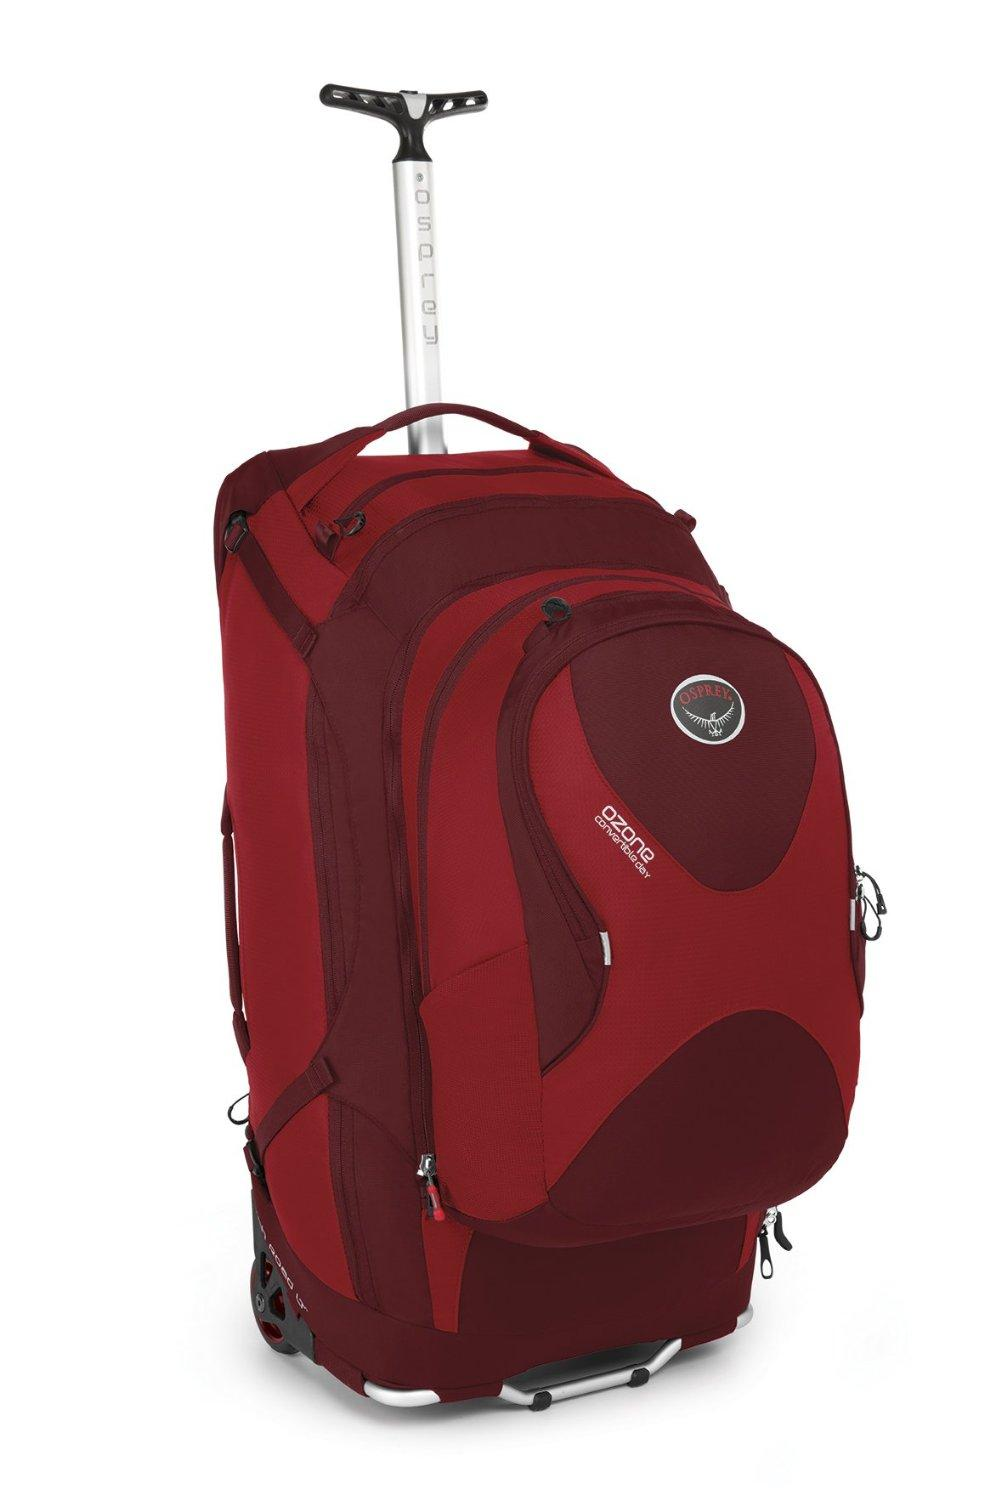 "Amazon.com: Osprey Ozone Convertible 22""/50L Wheeled Luggage: Clothing"